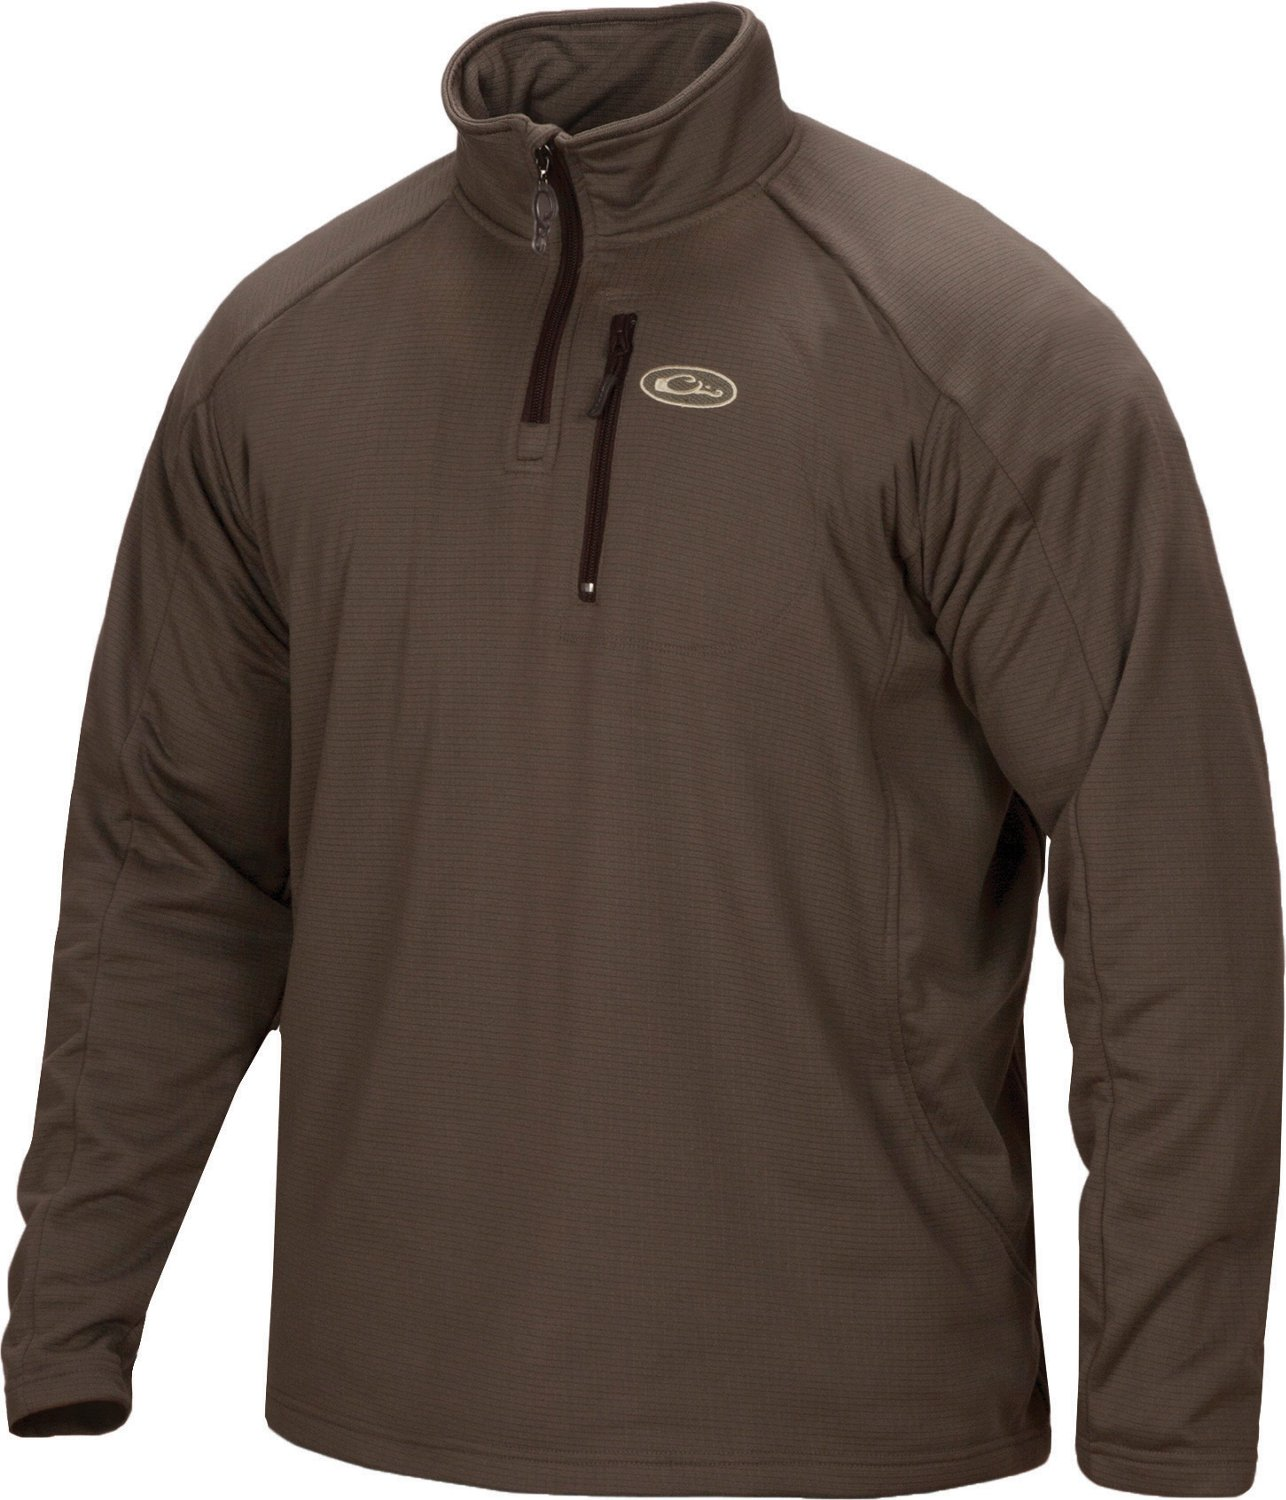 a33d0543f038 Display product reviews for Drake Waterfowl Men s Breathelite 1 4 Zip  Fleece Pullover